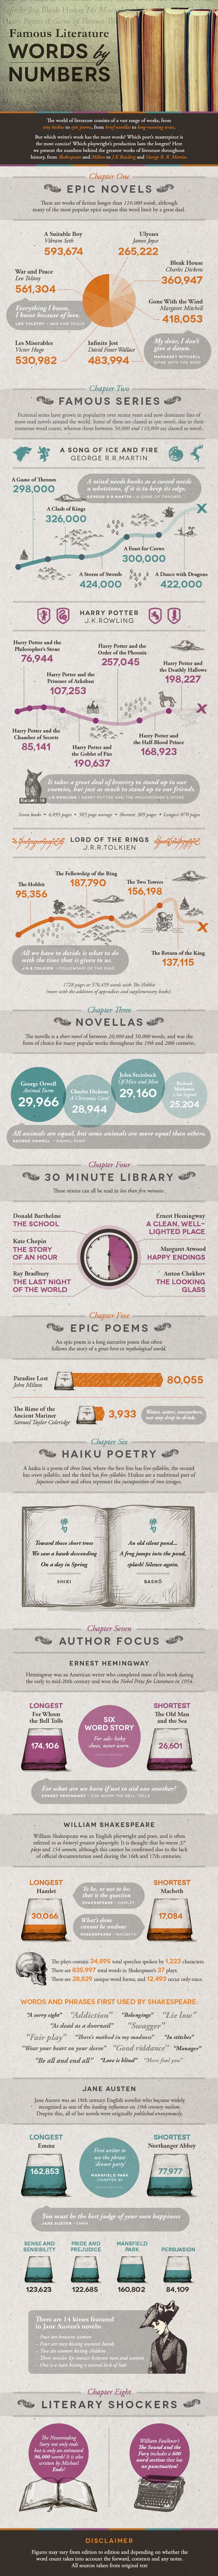 Infographic: How Long is that Novel?